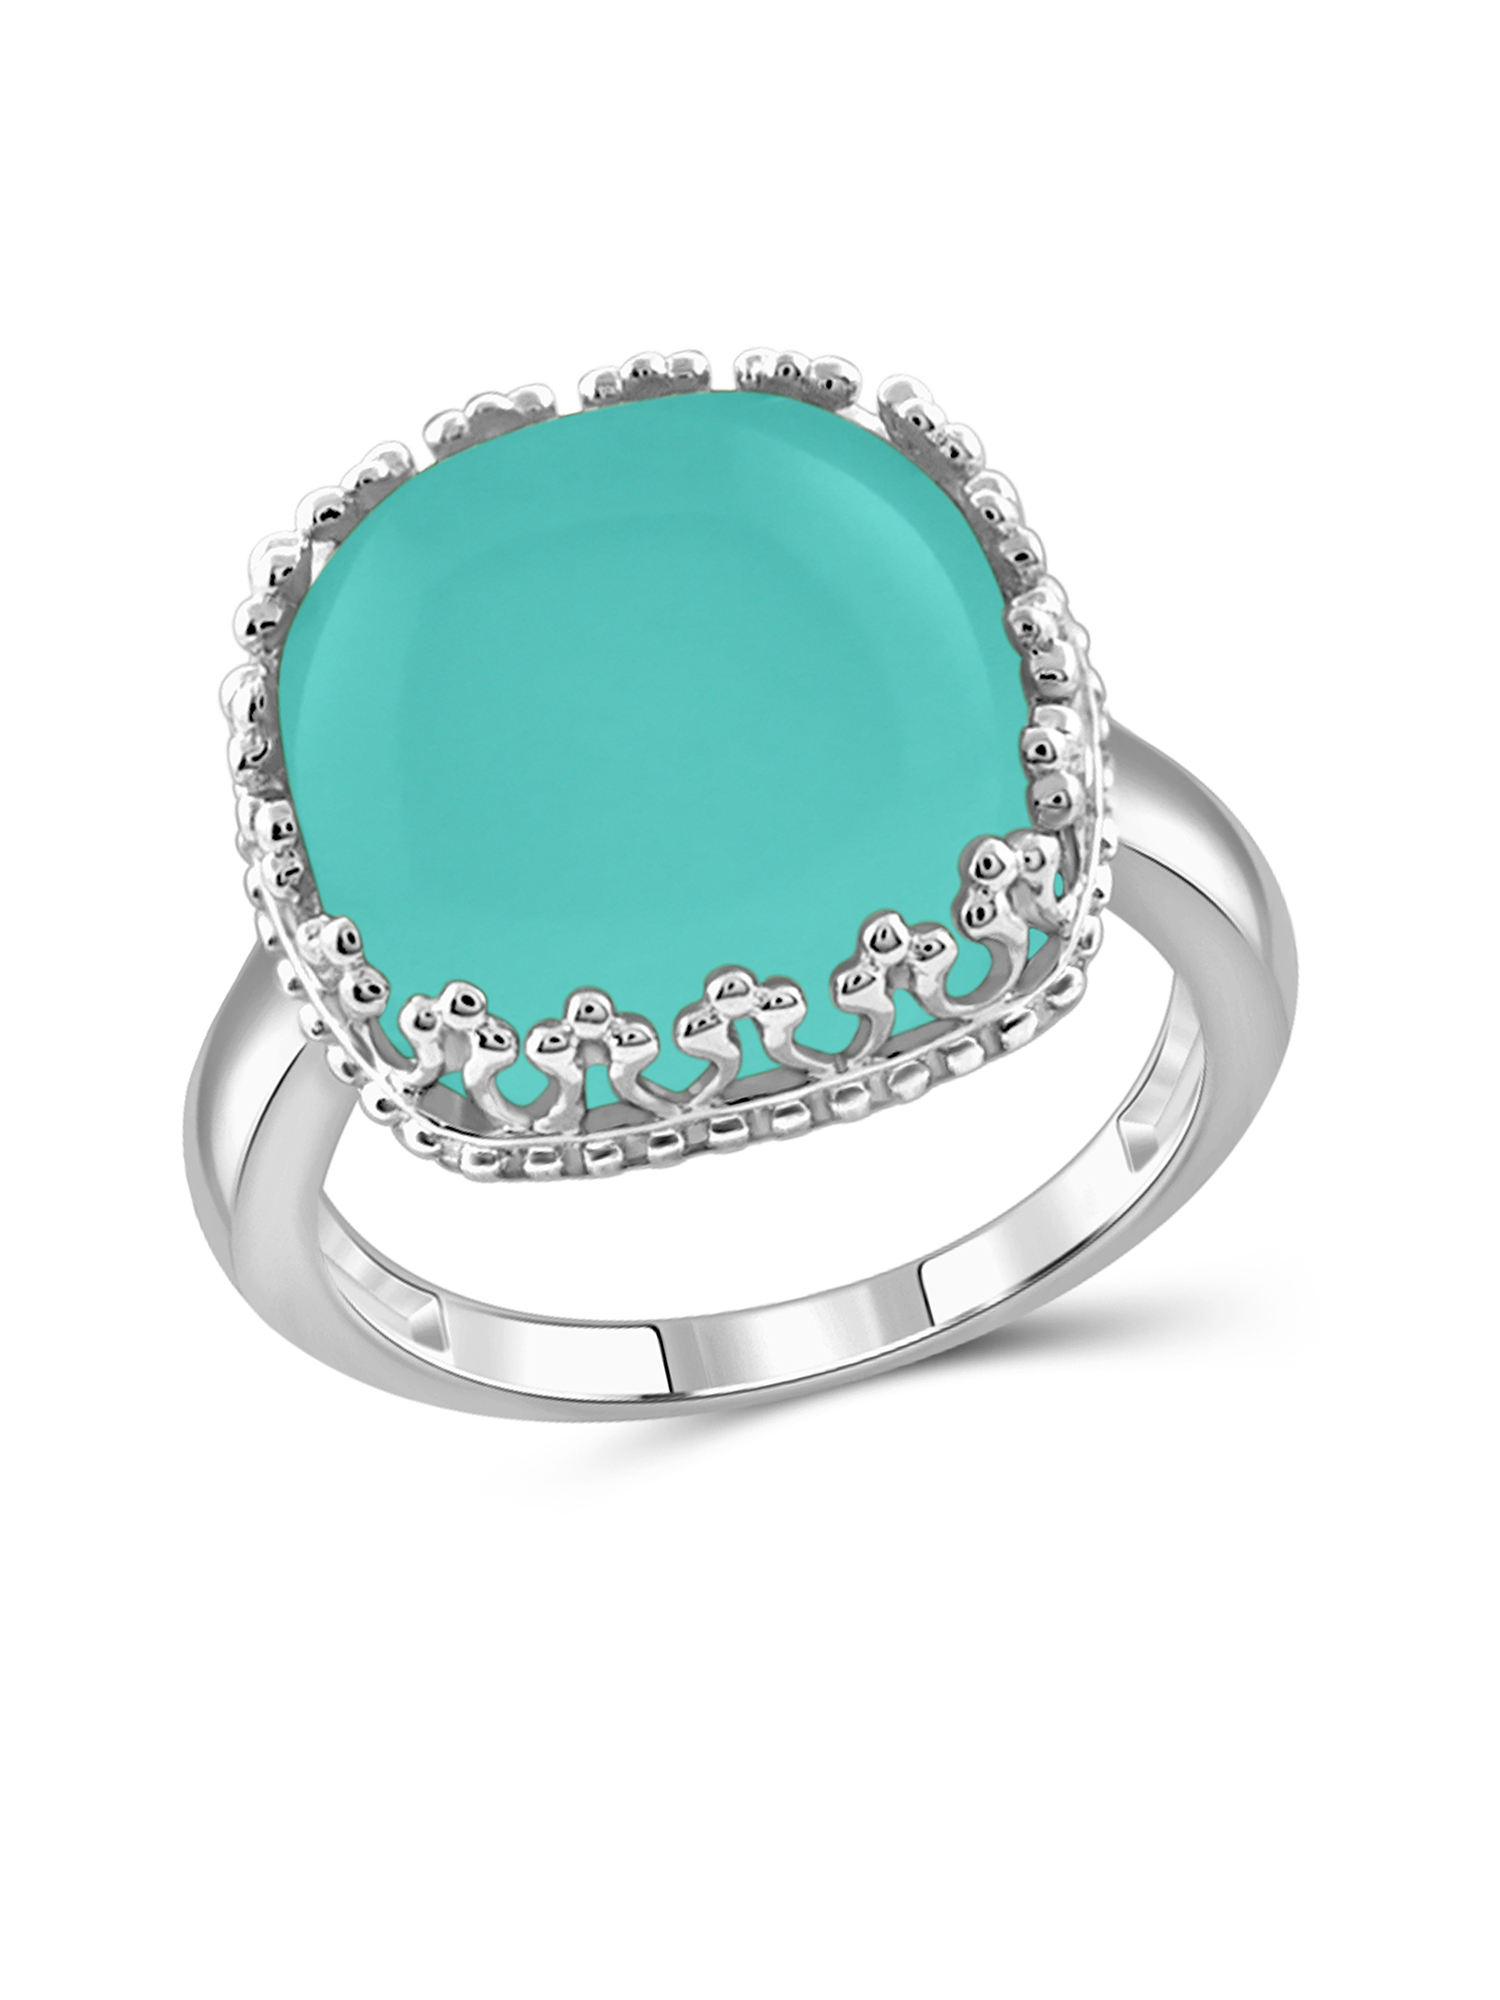 JewelersClub 10-3 4 Carat T.G.W. Chalcedony Sterling Silver Fashion Ring by JewelersClub